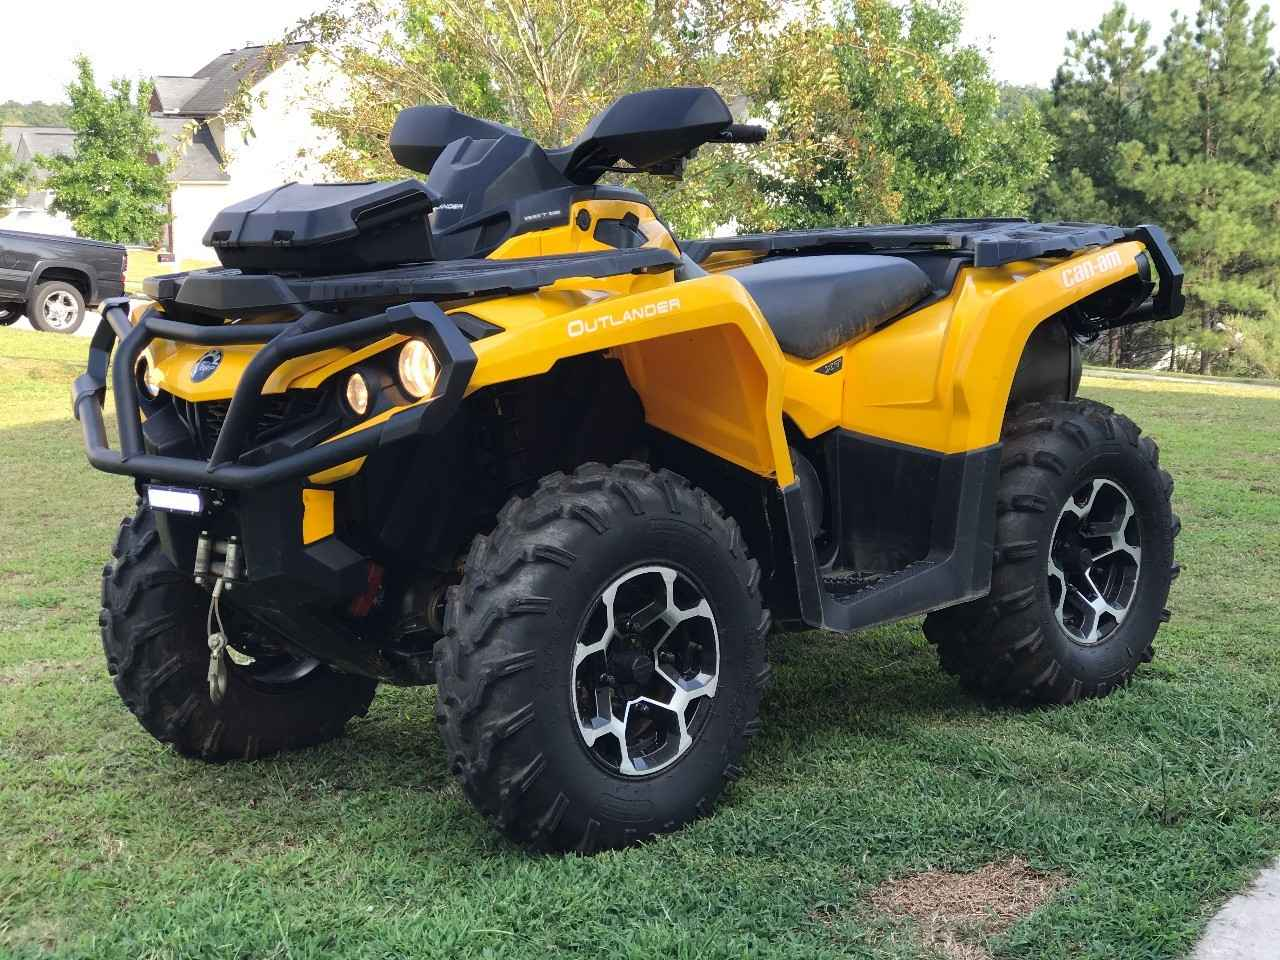 used 2016 can am outlander xt 850 atvs for sale in georgia on atv trades. Black Bedroom Furniture Sets. Home Design Ideas